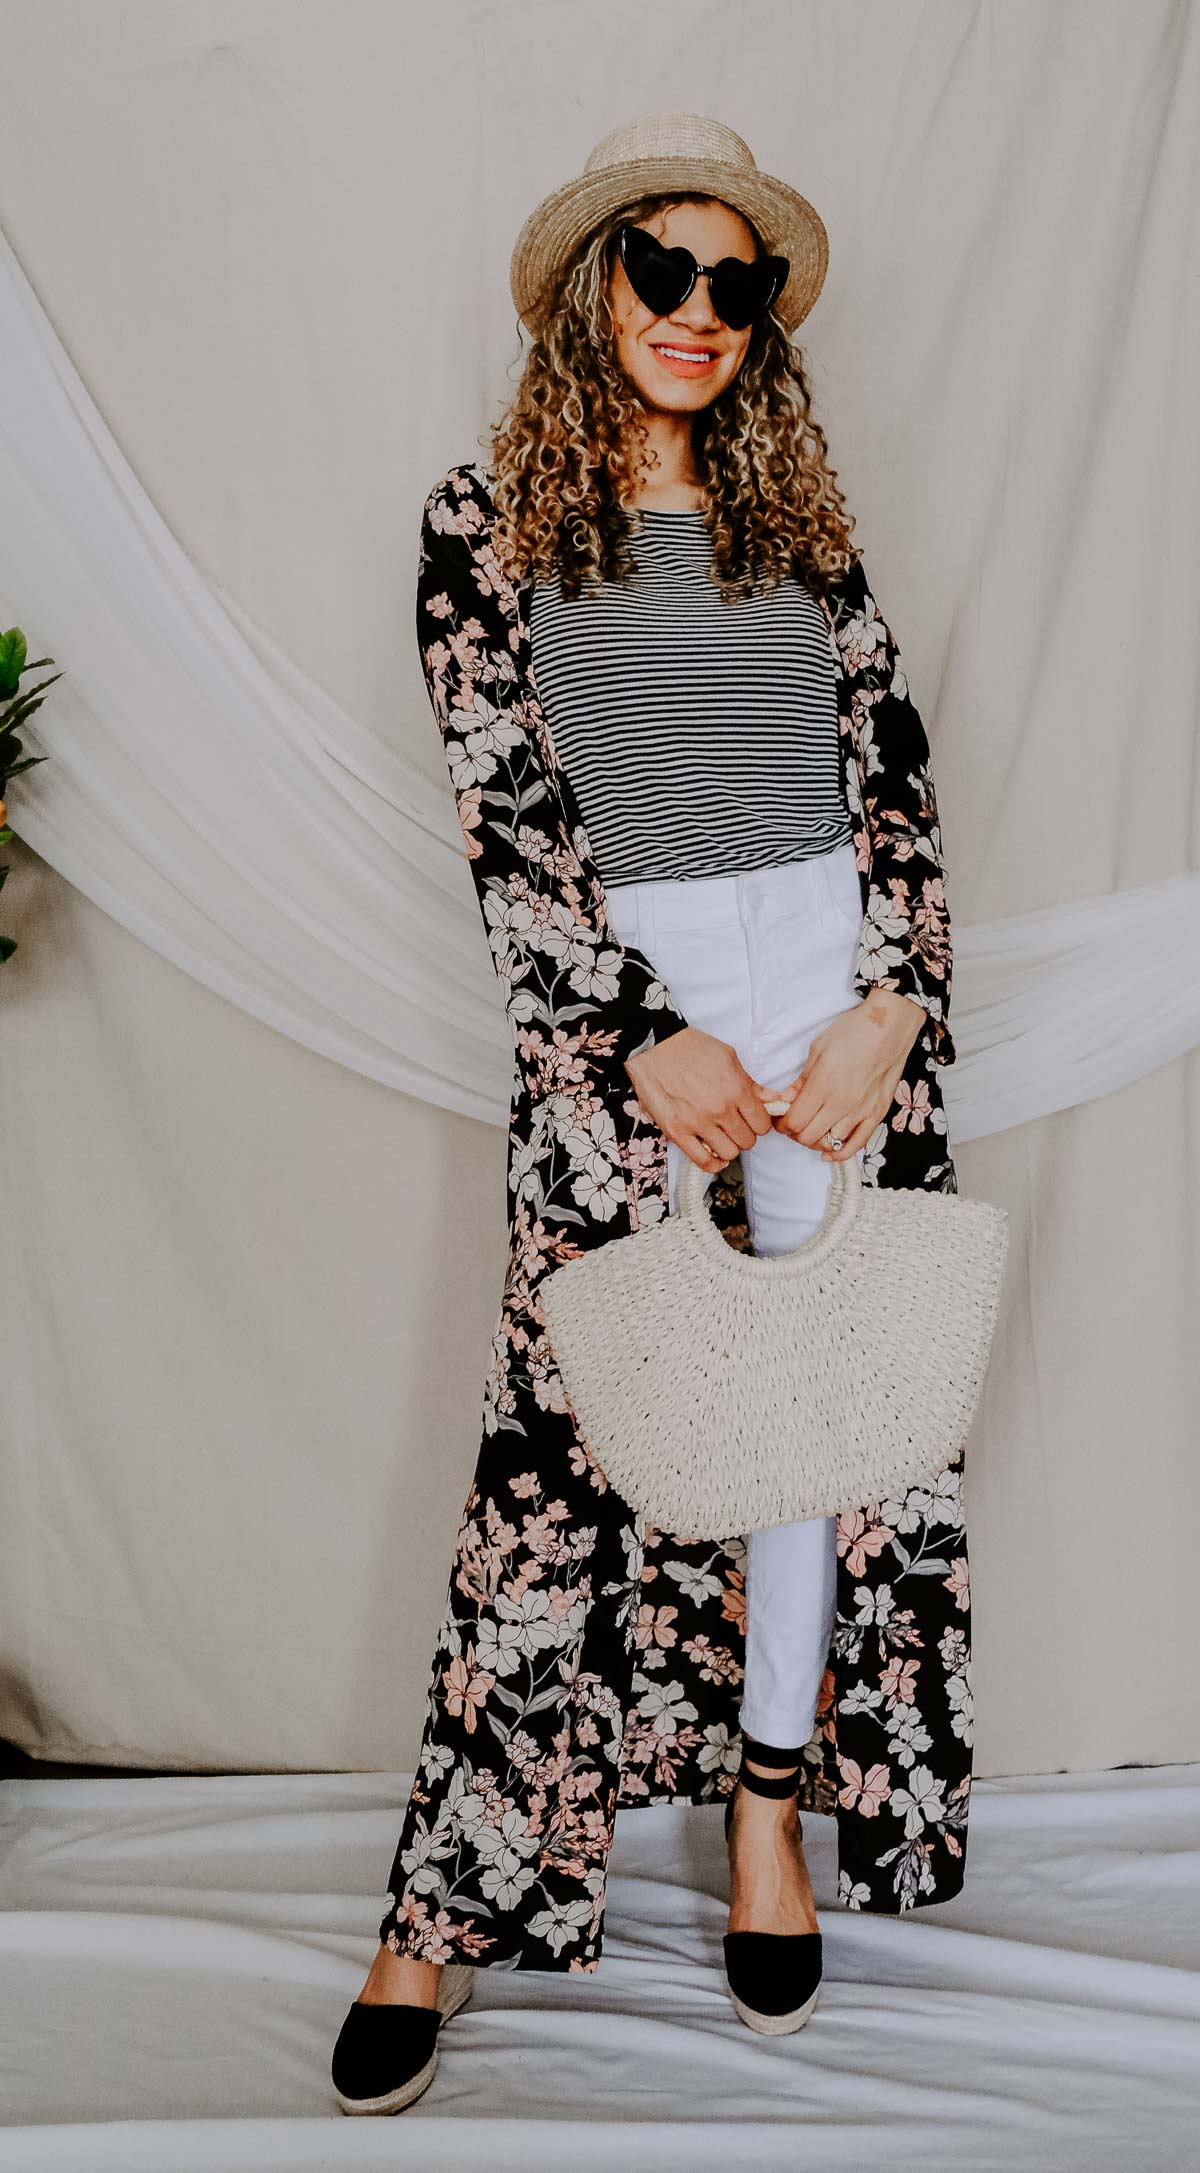 Wondering what spring staples you need for your spring outfits? Check out this post on what you need this season and this kimono outfit is one of them!